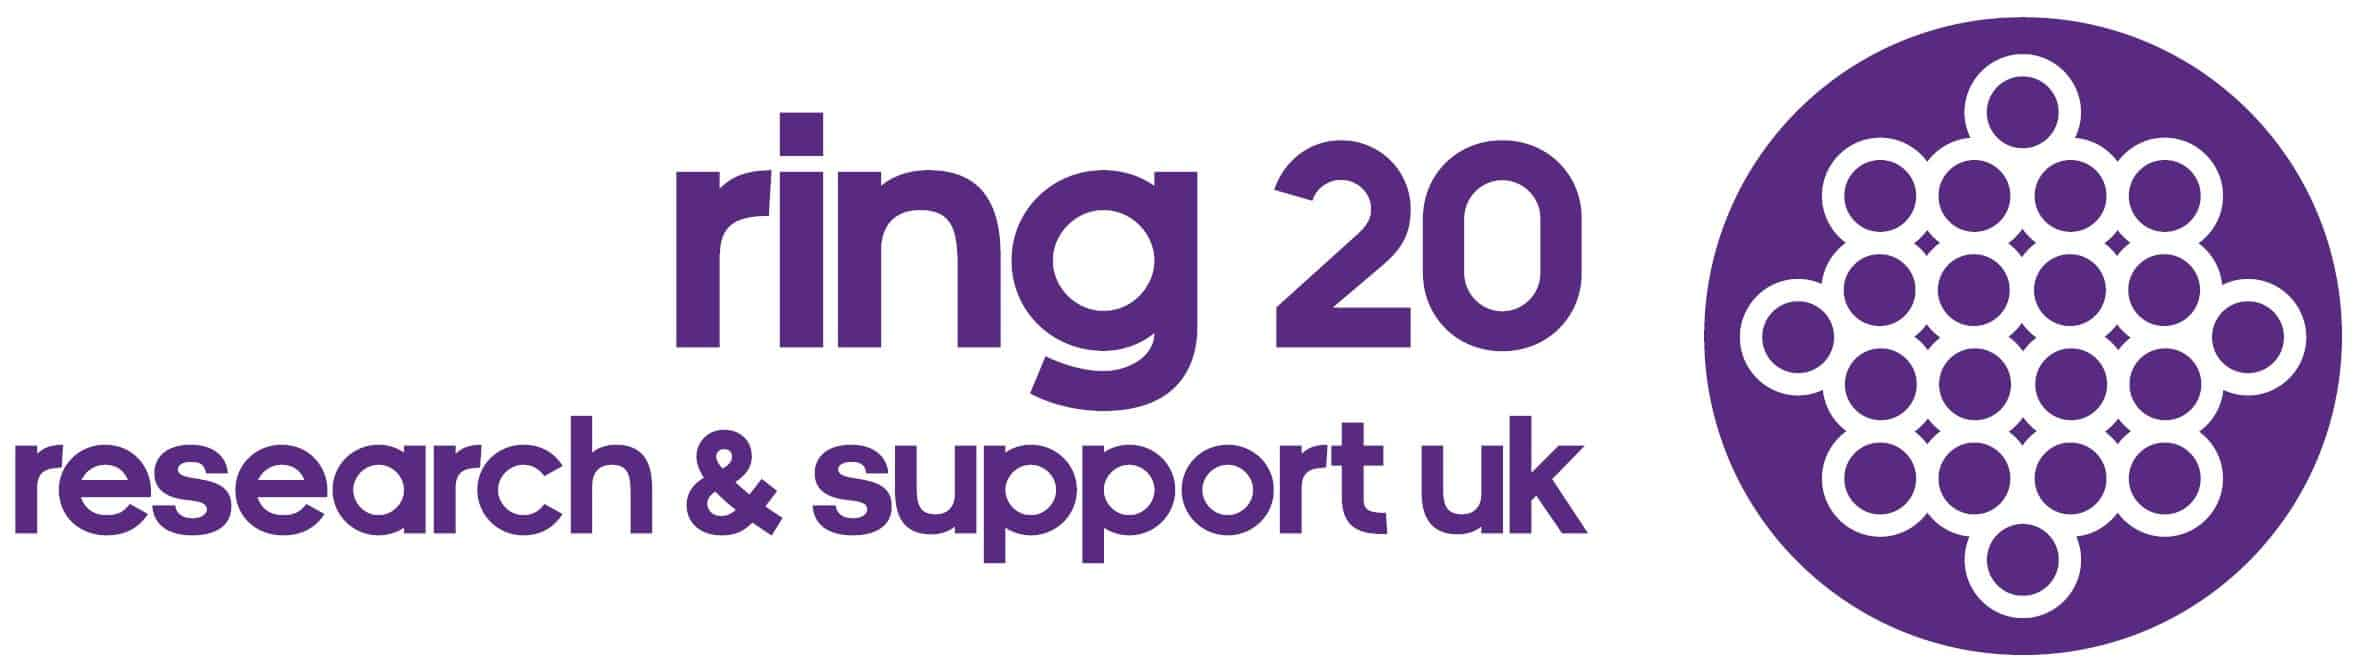 Ring 20 Research & Support UK logo